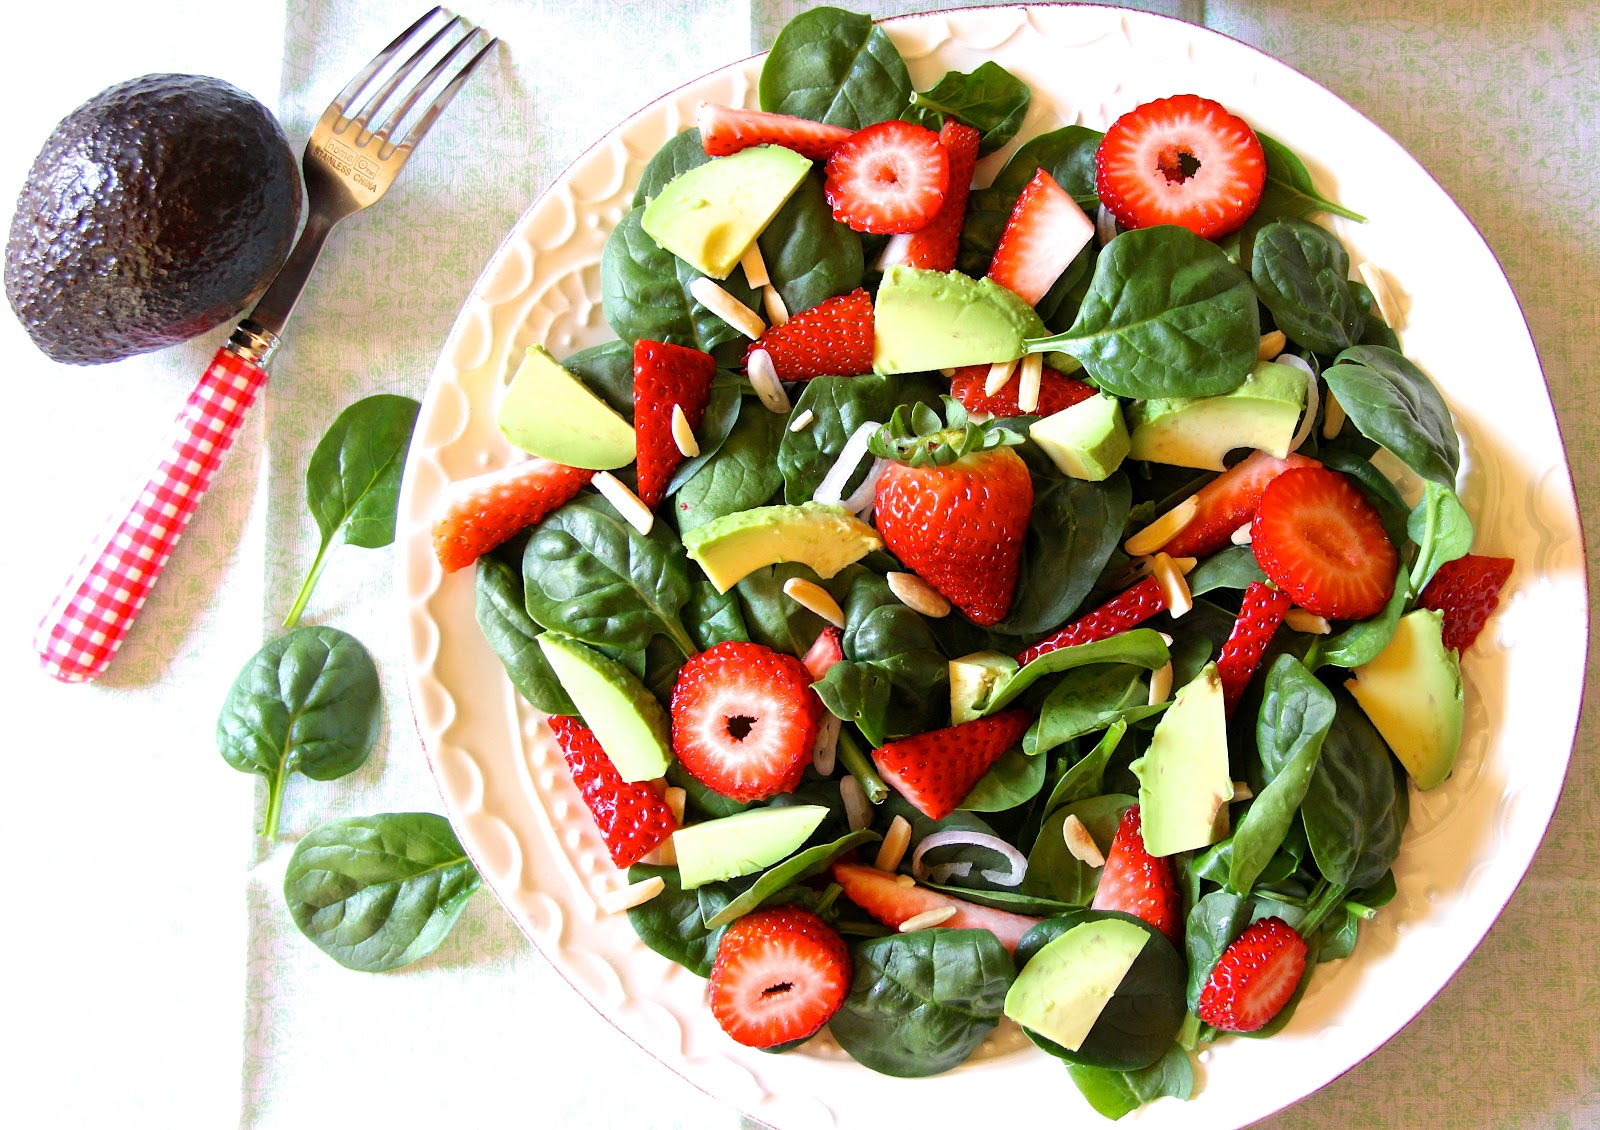 ... magical that happens when you pair strawberries and avocados